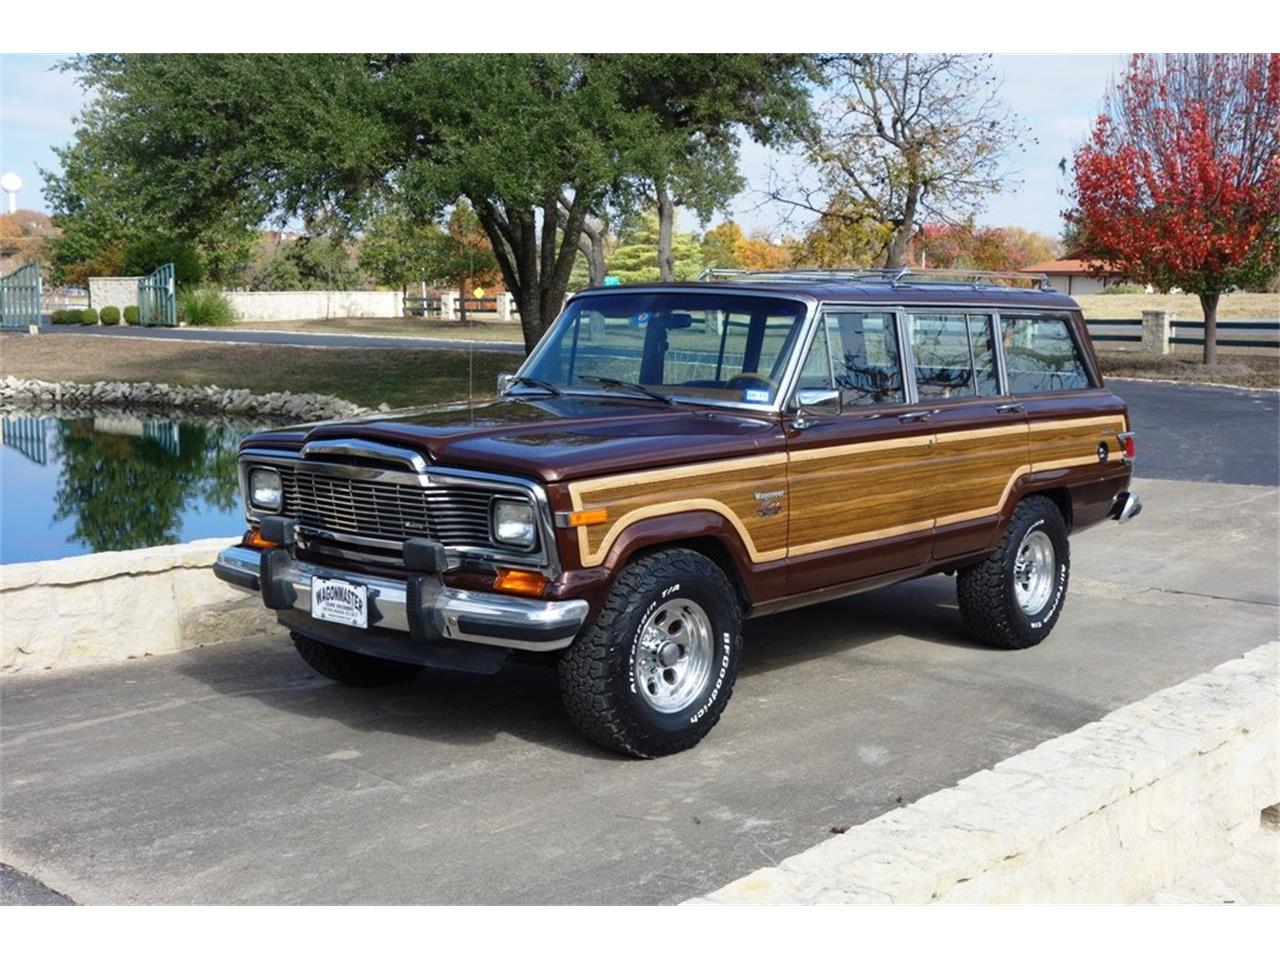 Jeep Wagoneer For Sale >> 1983 Jeep Wagoneer For Sale Classiccars Com Cc 1183400